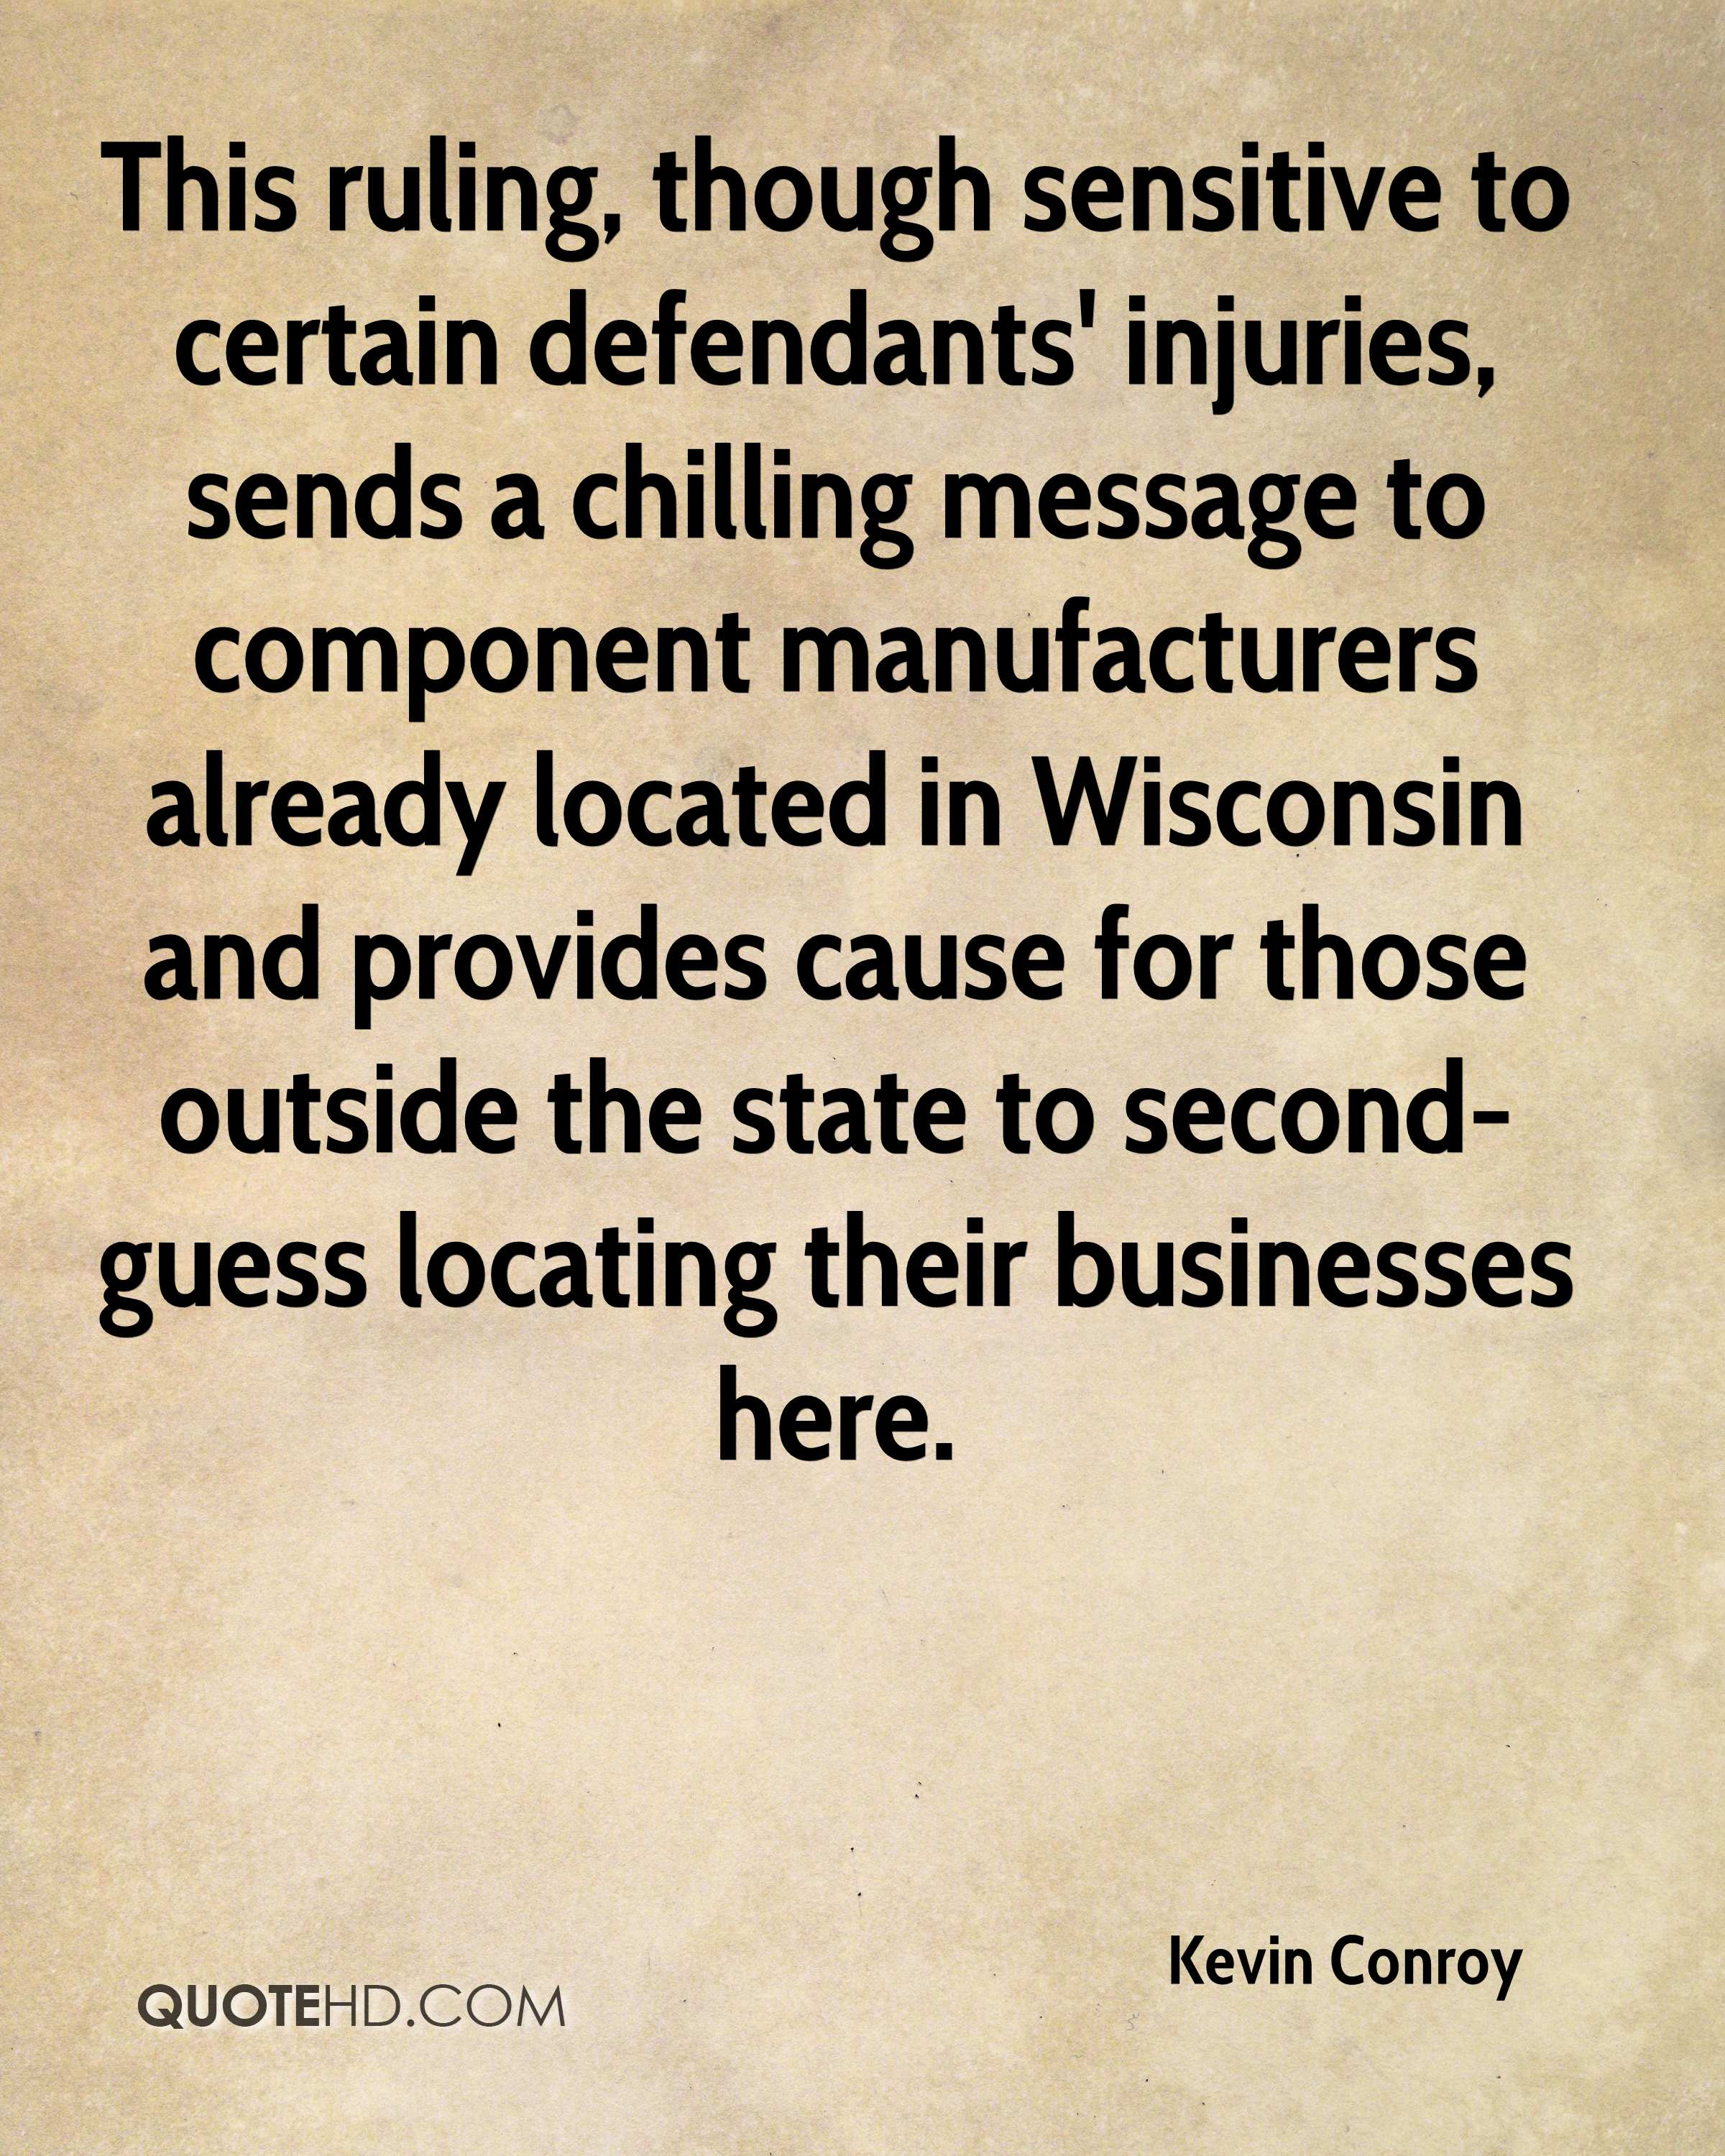 This ruling, though sensitive to certain defendants' injuries, sends a chilling message to component manufacturers already located in Wisconsin and provides cause for those outside the state to second-guess locating their businesses here.